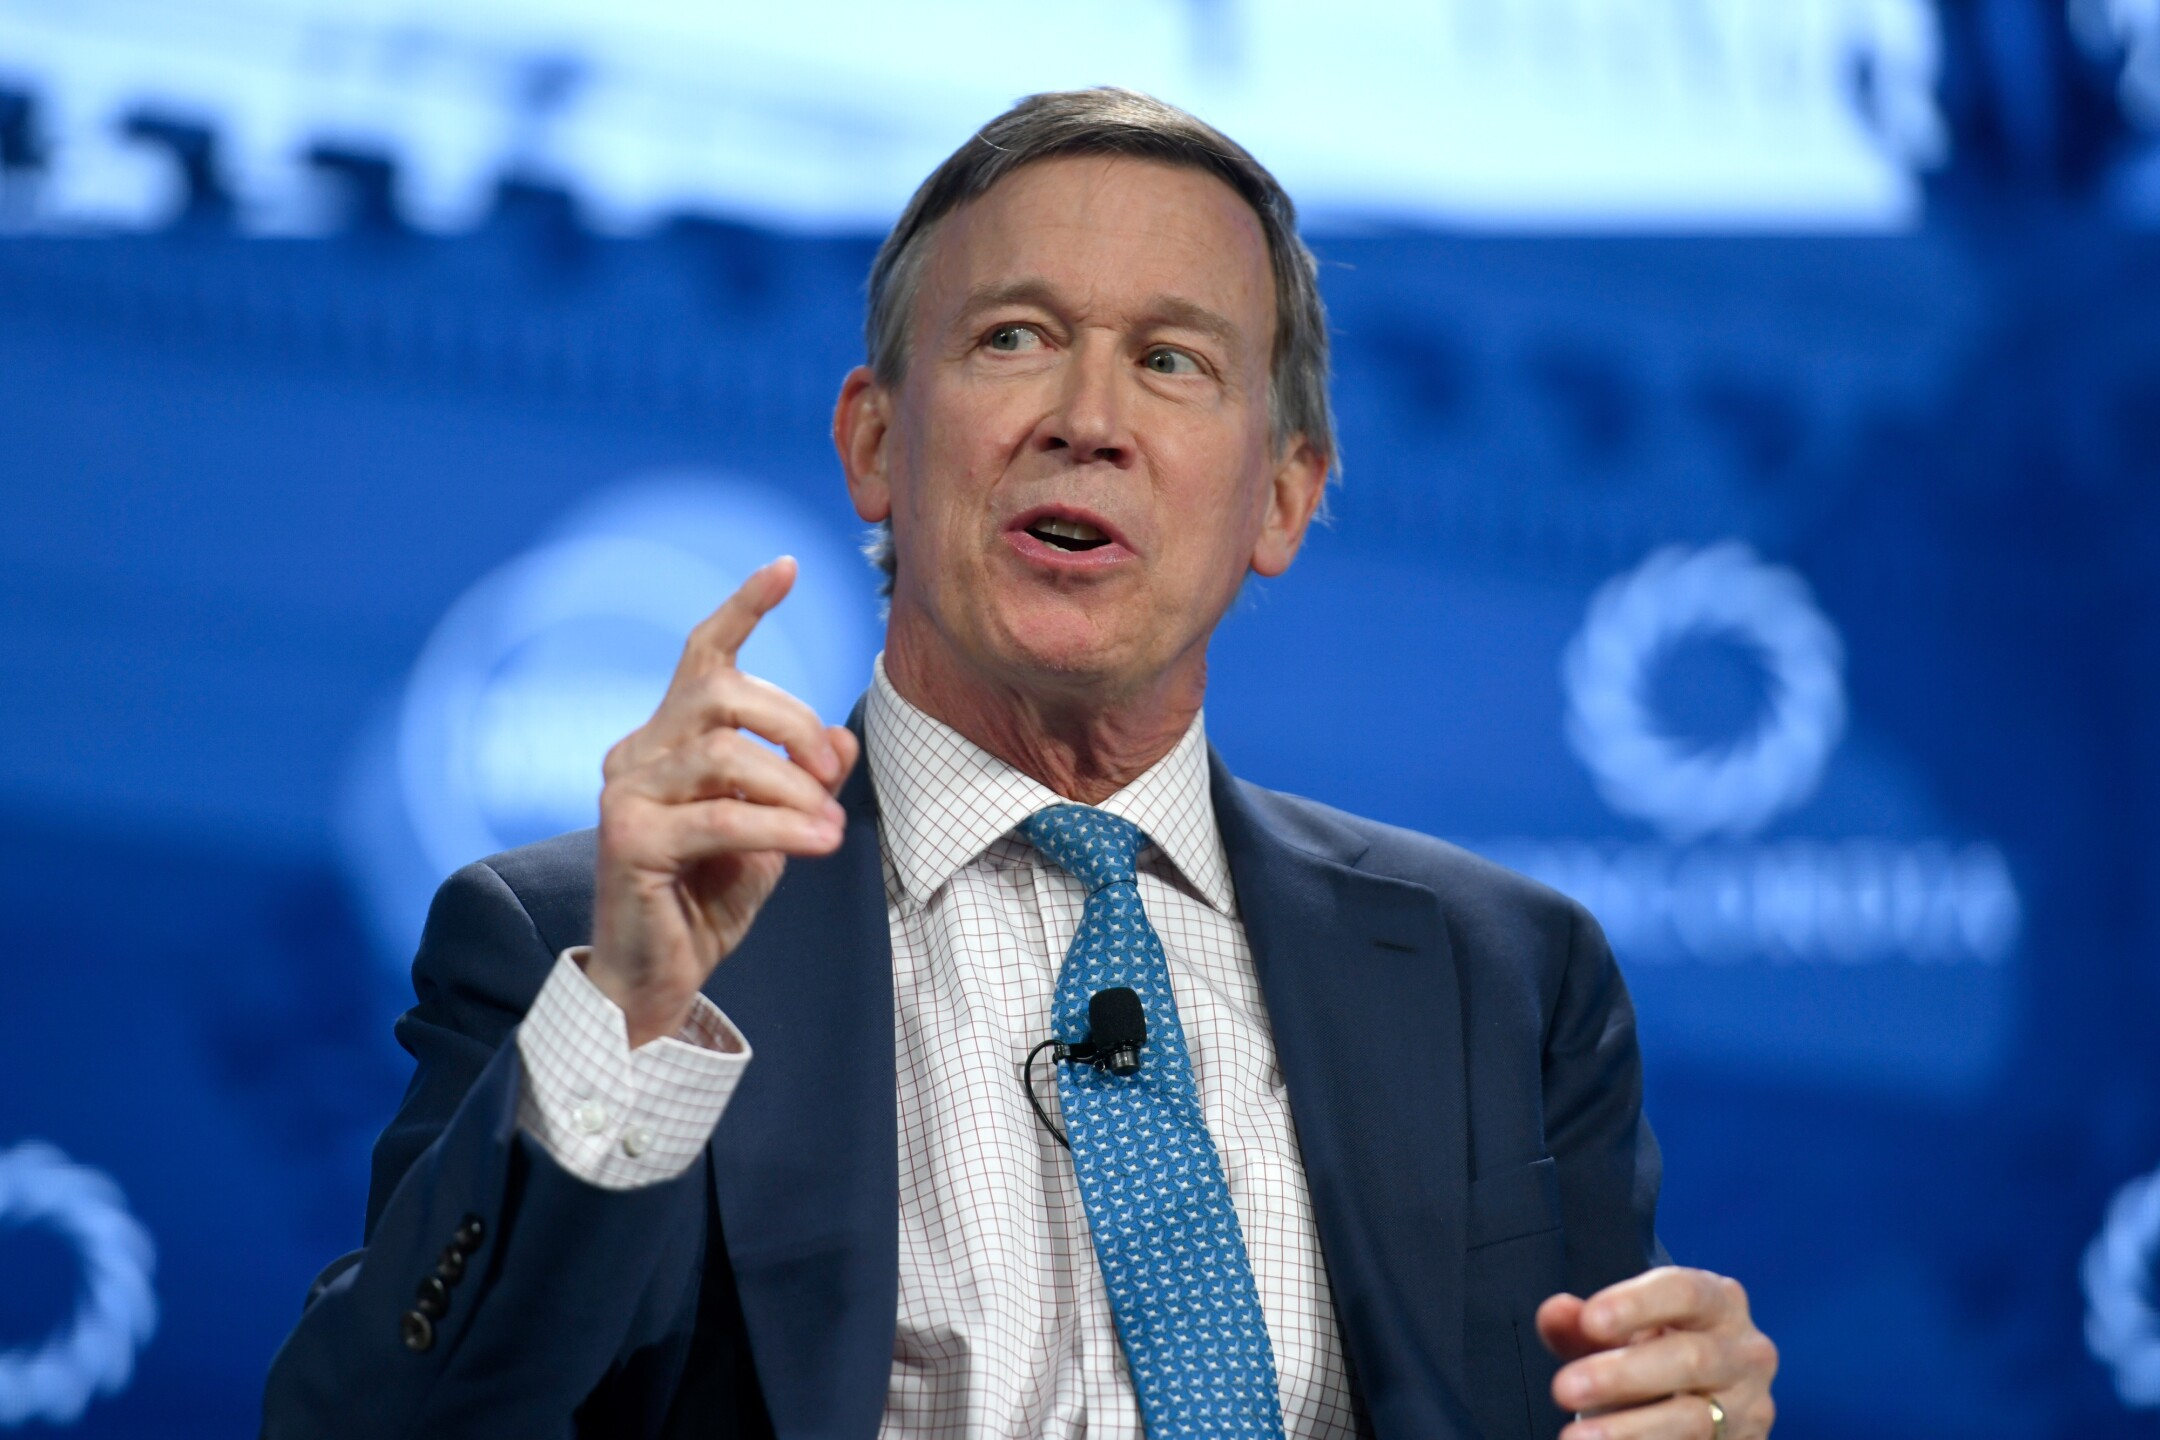 John Hickenlooper is a two-time governor of Colorado. He announced his candidacy for President of the United States on March 4, 2019.